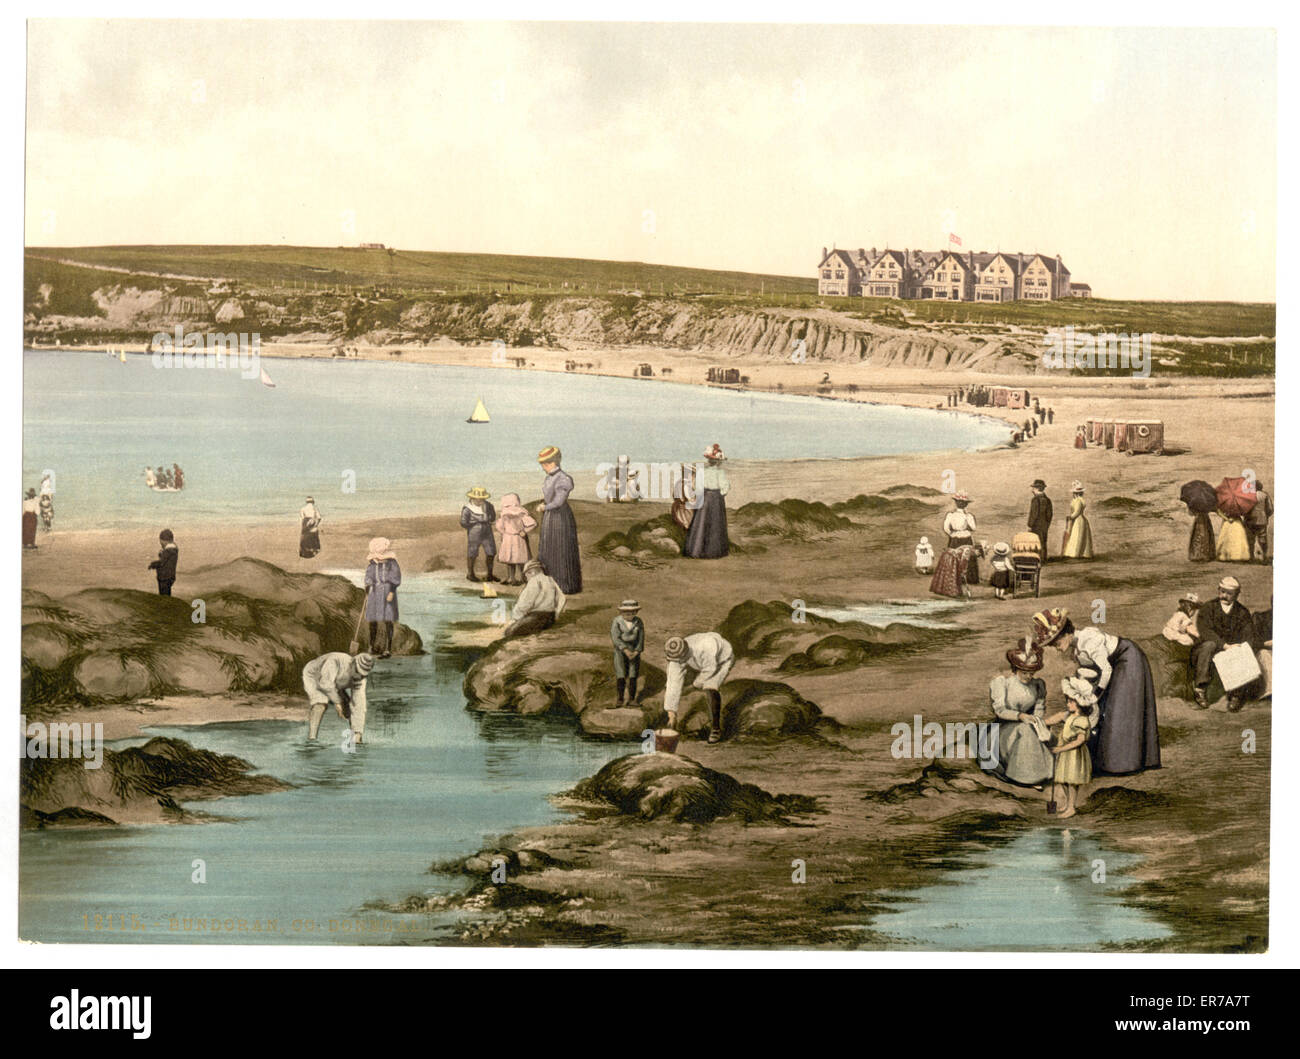 Introducing SIRO 100% Fibre Broadband in Bundoran - uselesspenguin.co.uk